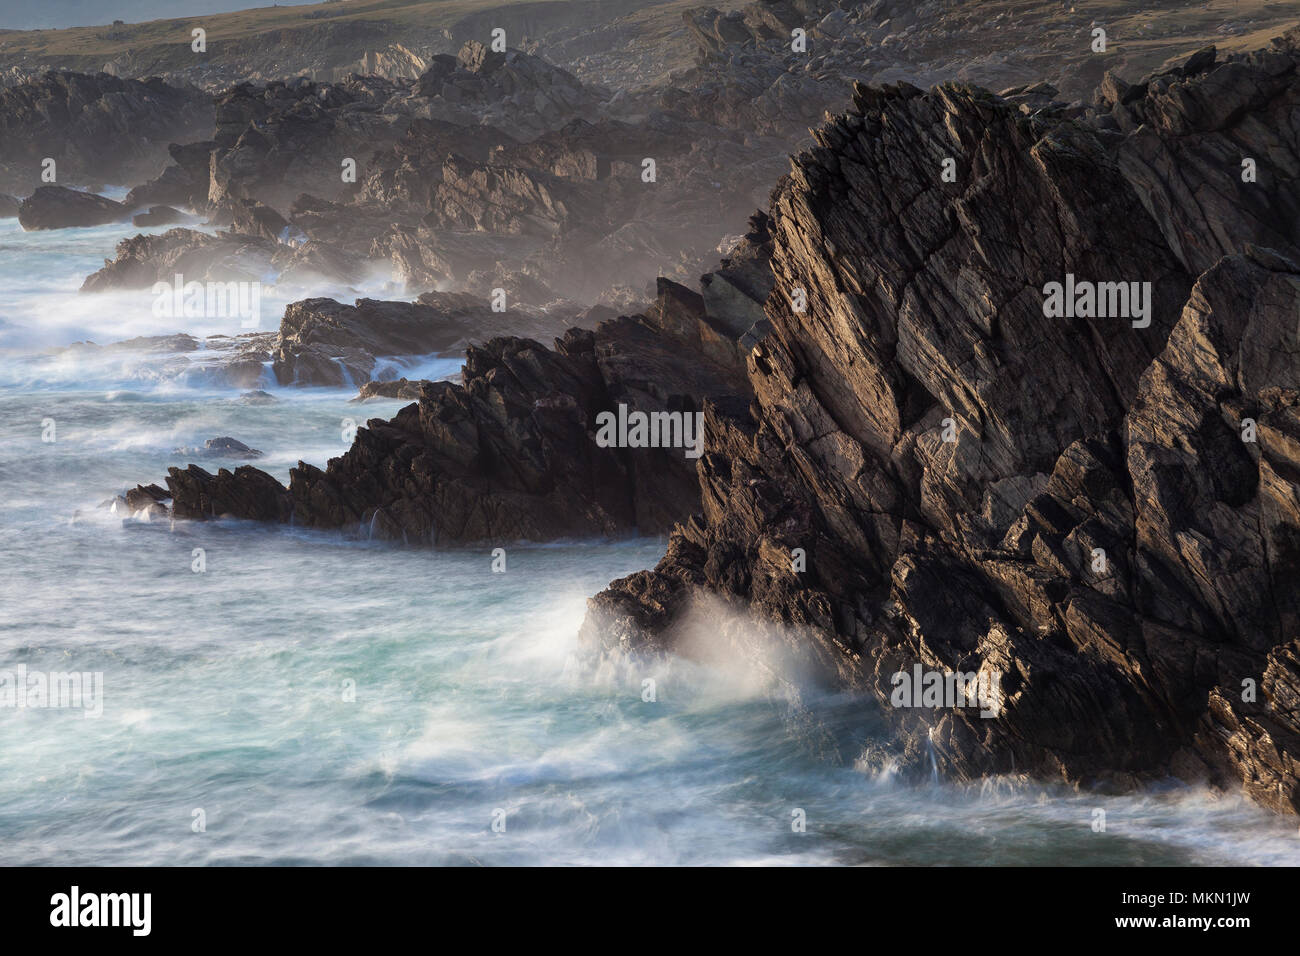 Waves crashing on the rocky coastline of Achill Island a destination on the Wild Atlantic Way  County Mayo Ireland - Stock Image